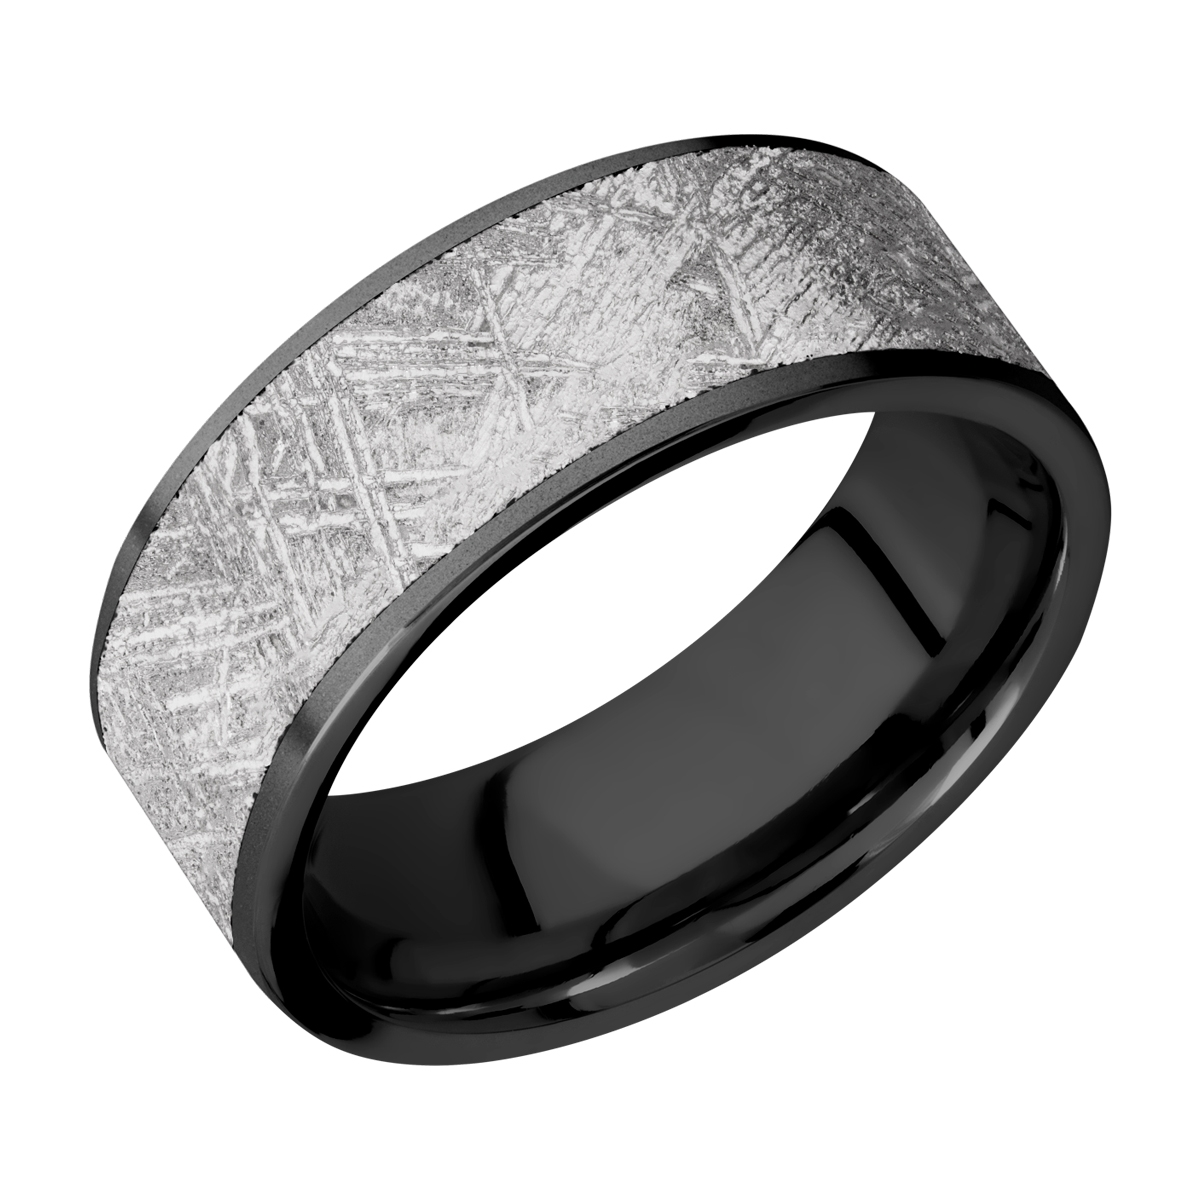 Lashbrook Z8F17/METEORITE Zirconium Wedding Ring or Band